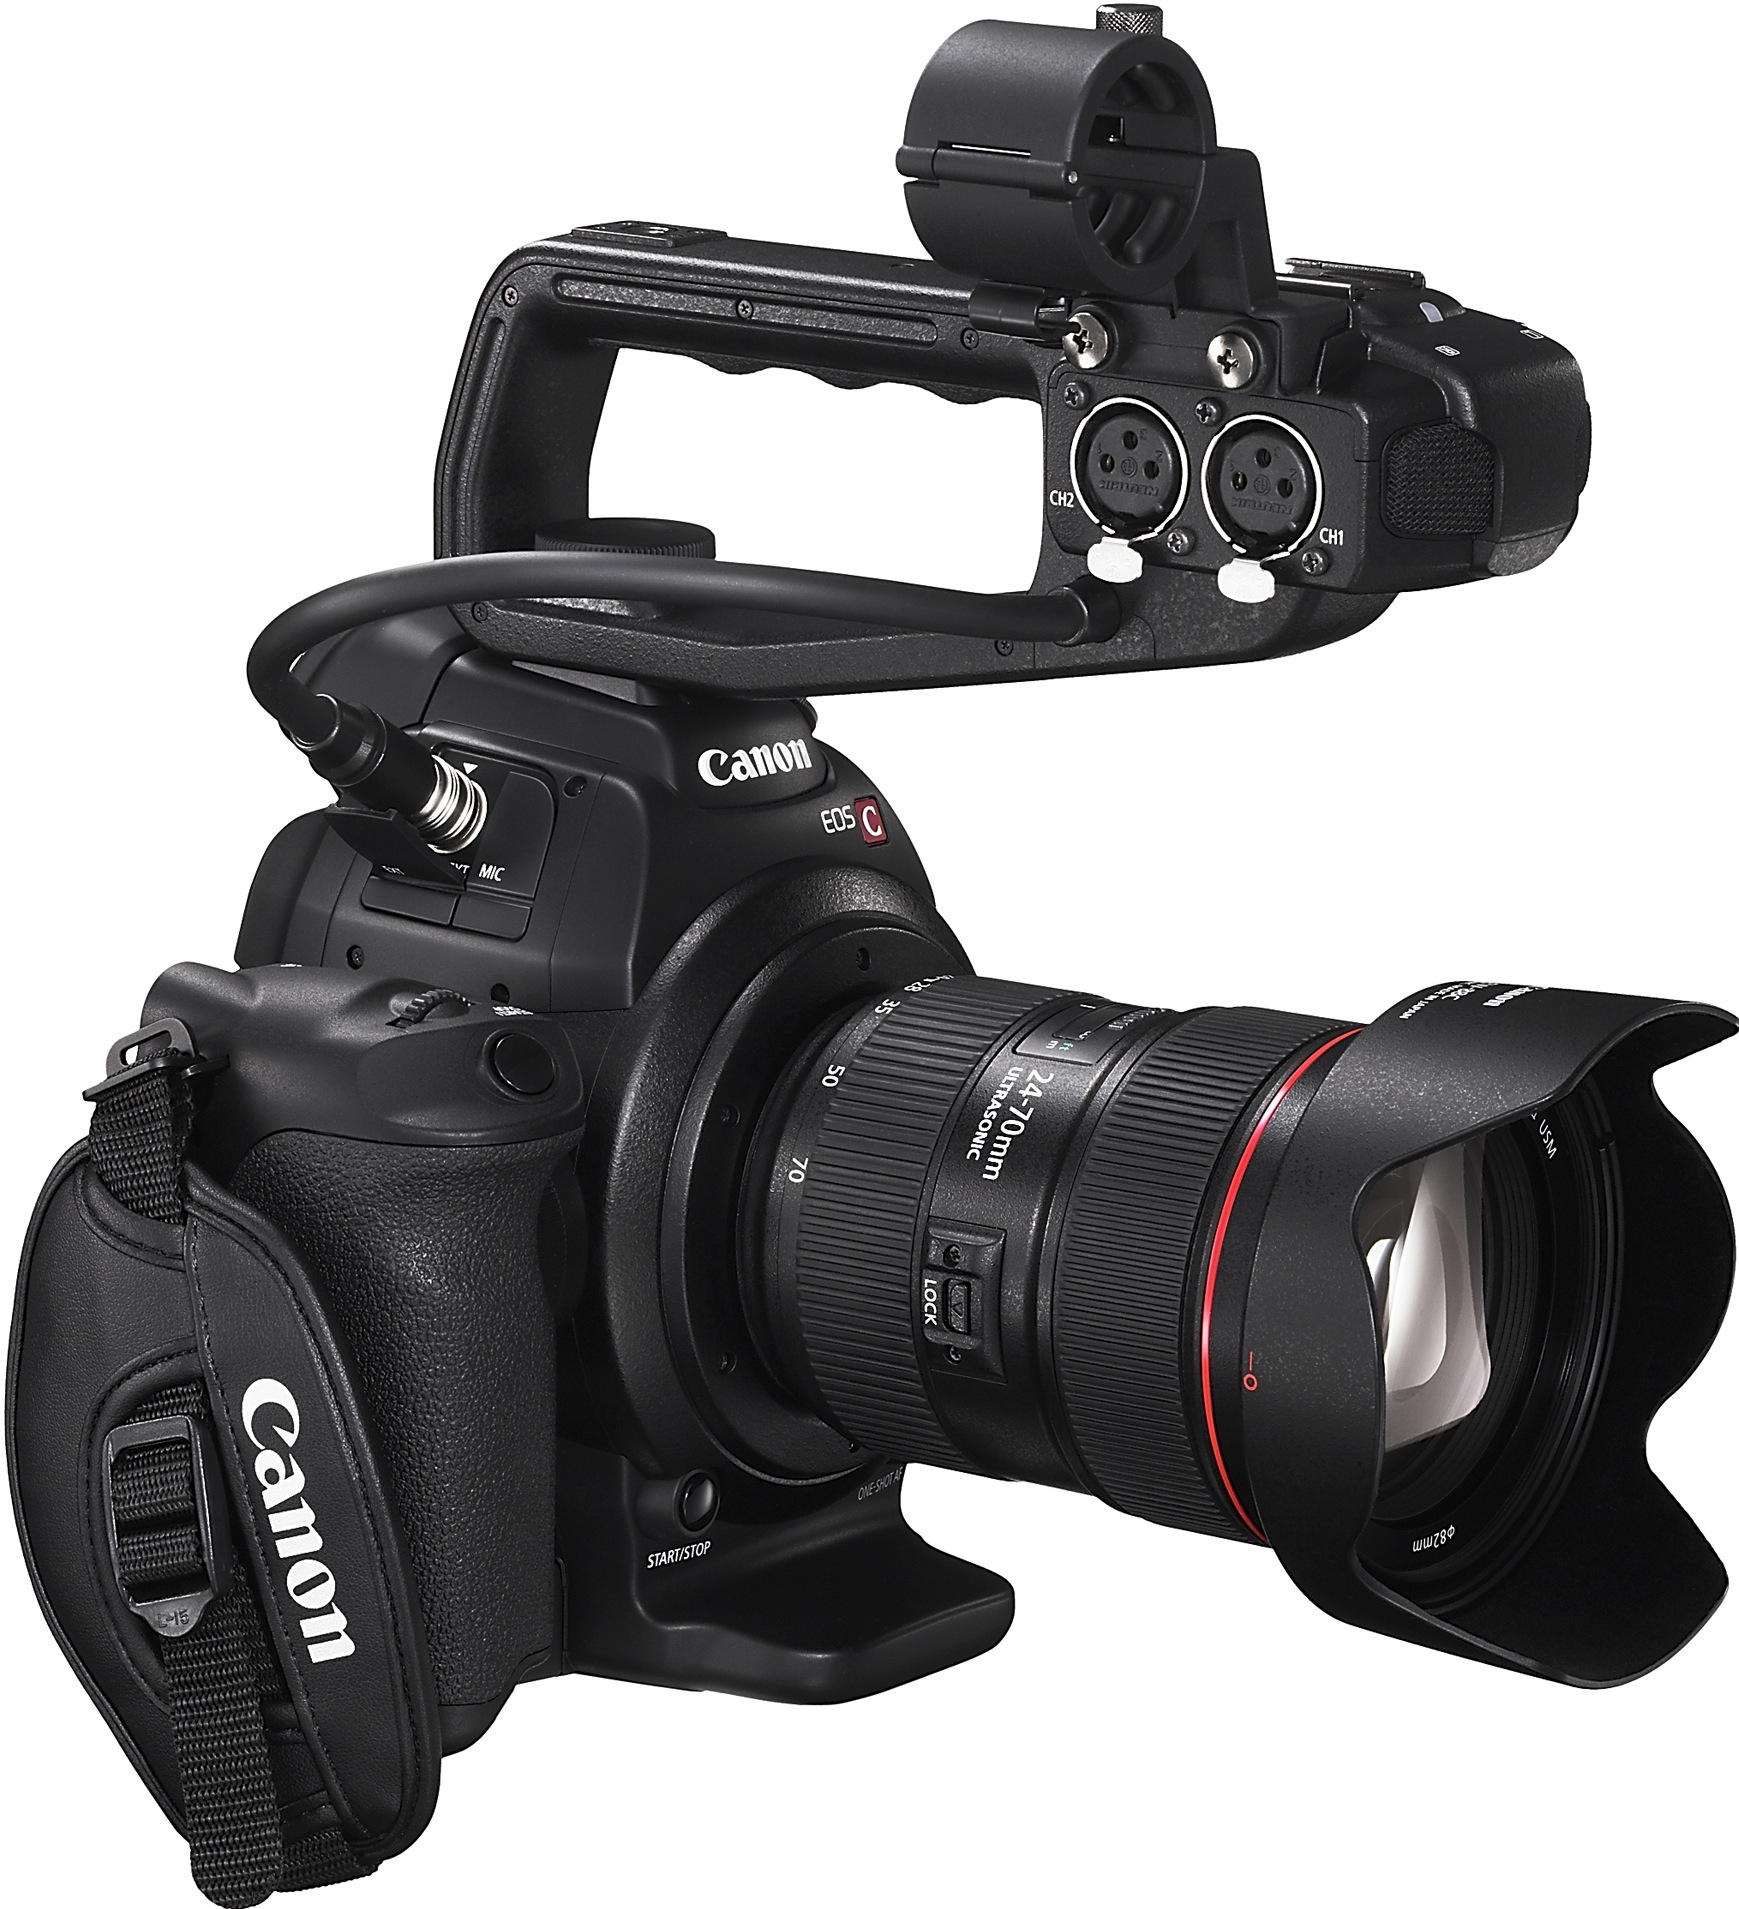 Photo of Test: CANON C100-specificatii high-end la un pret decent!